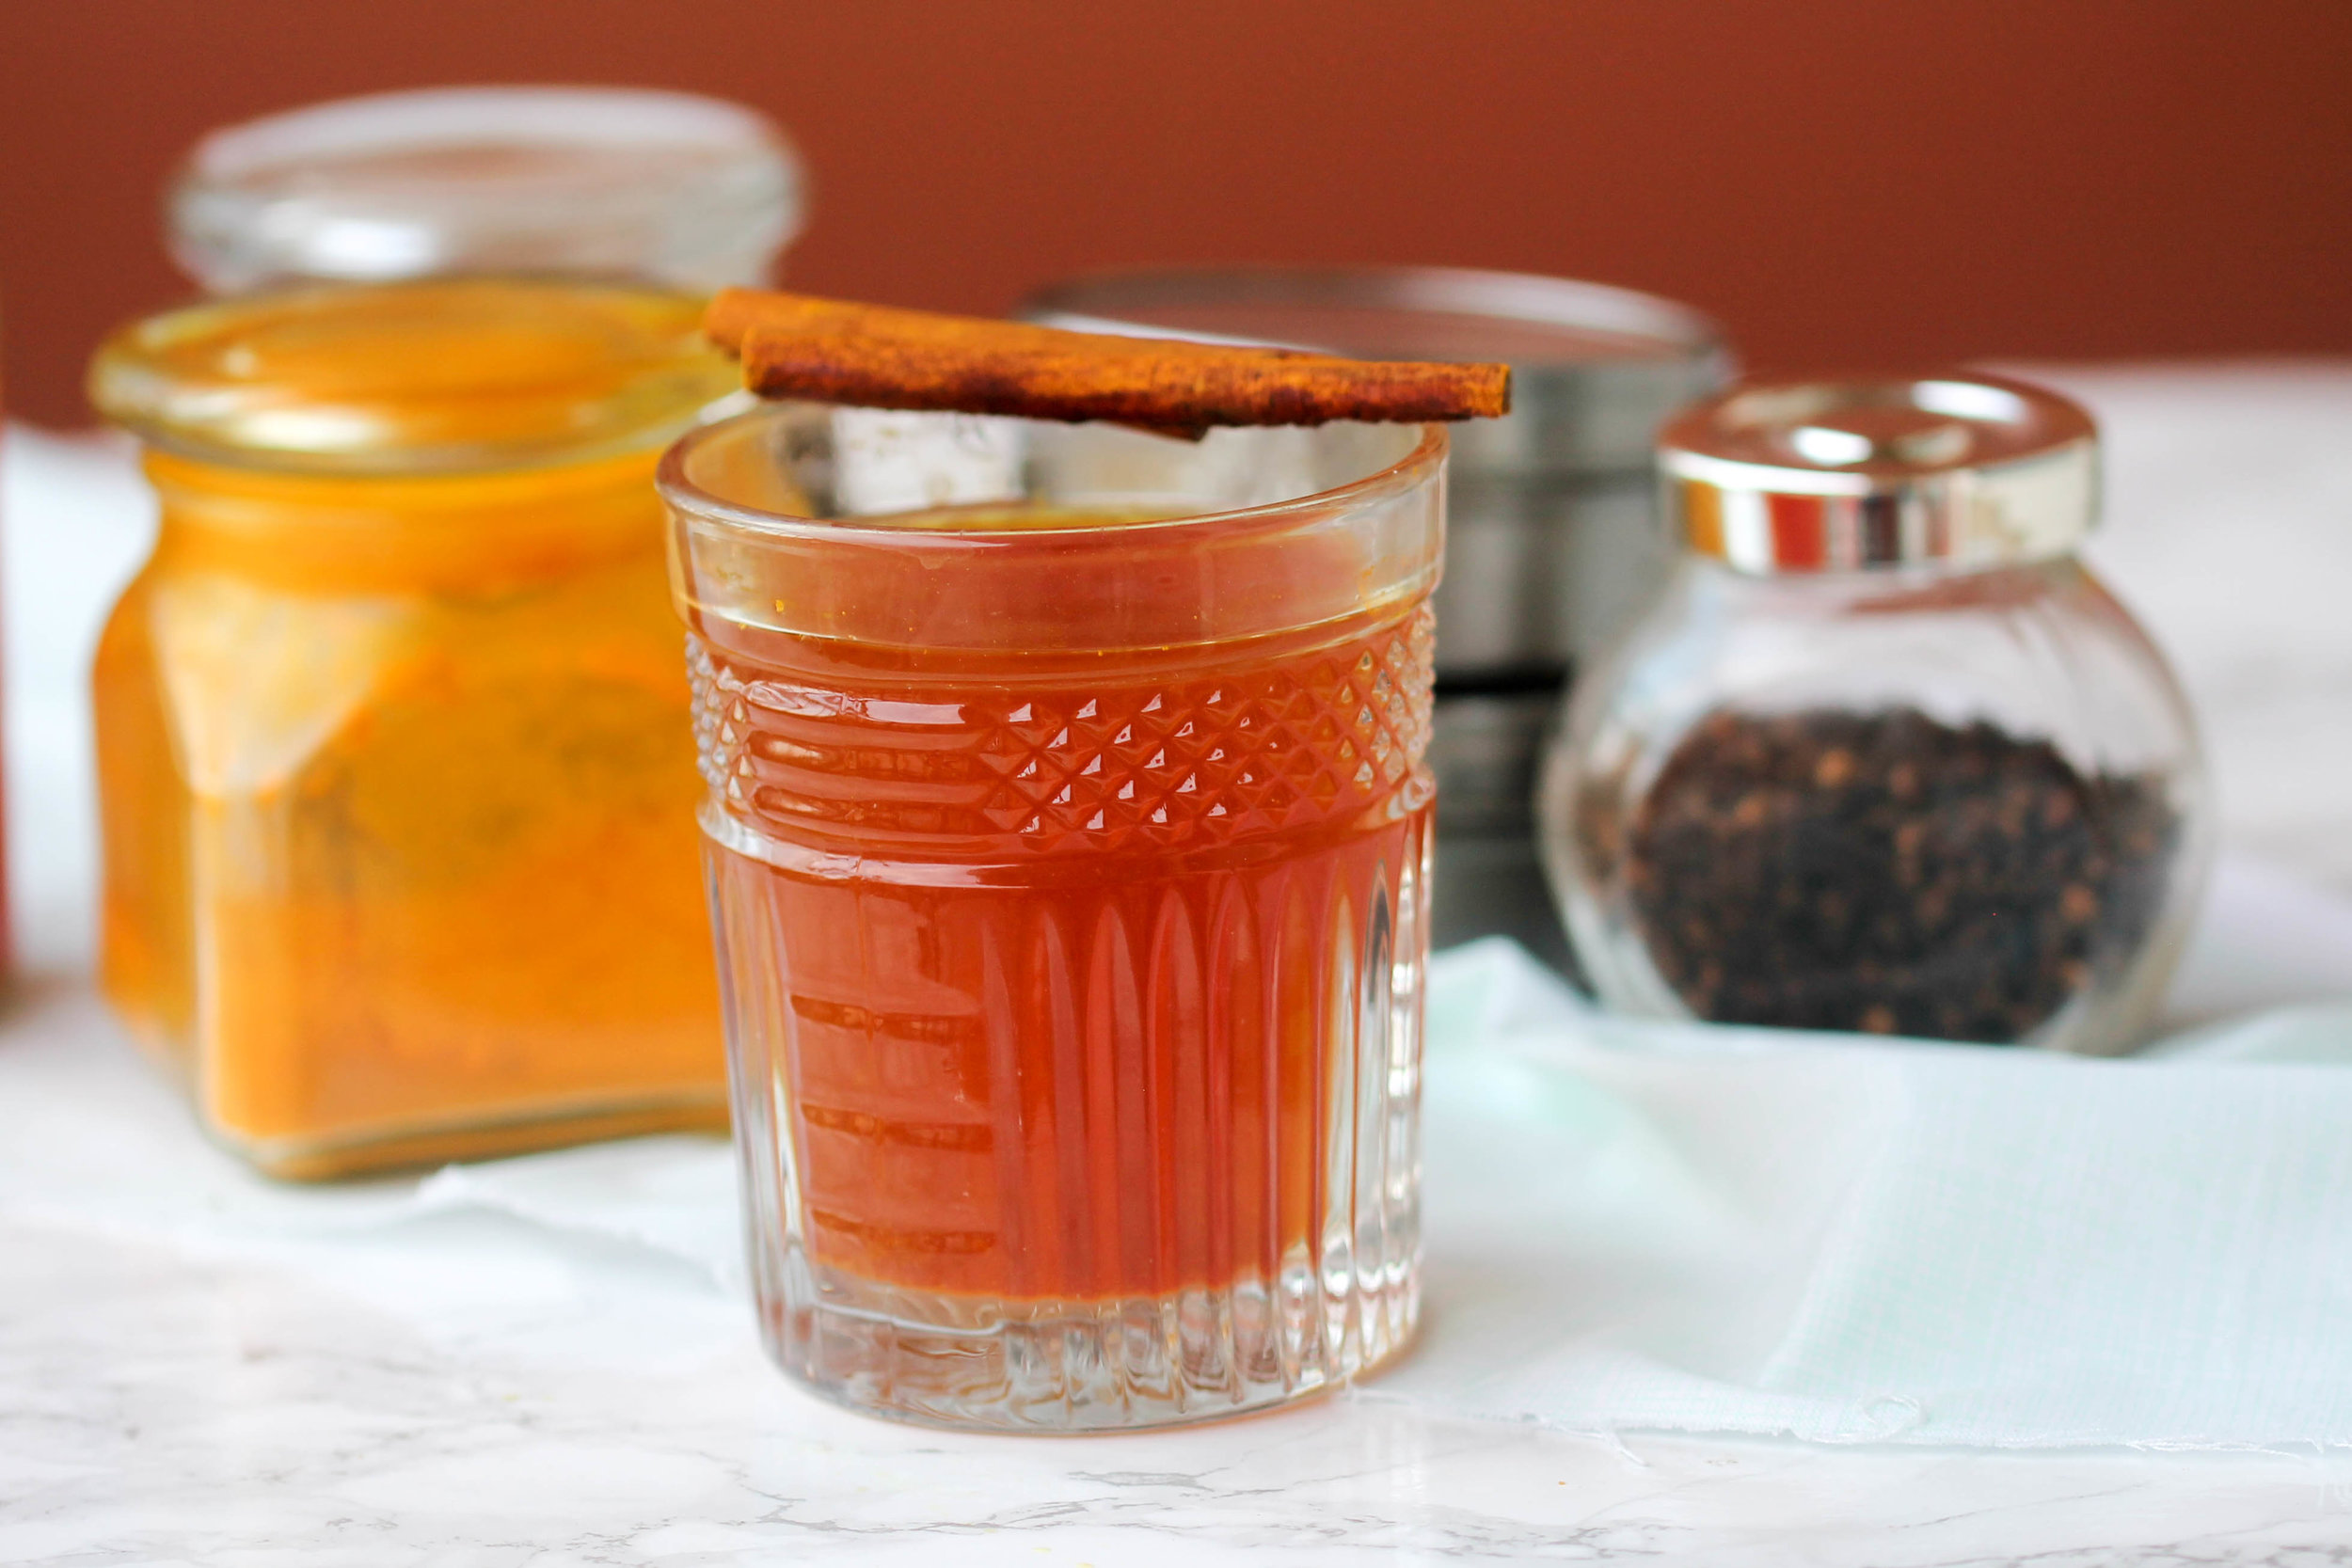 Homemade Cold Tonic with Aromatic Spices!